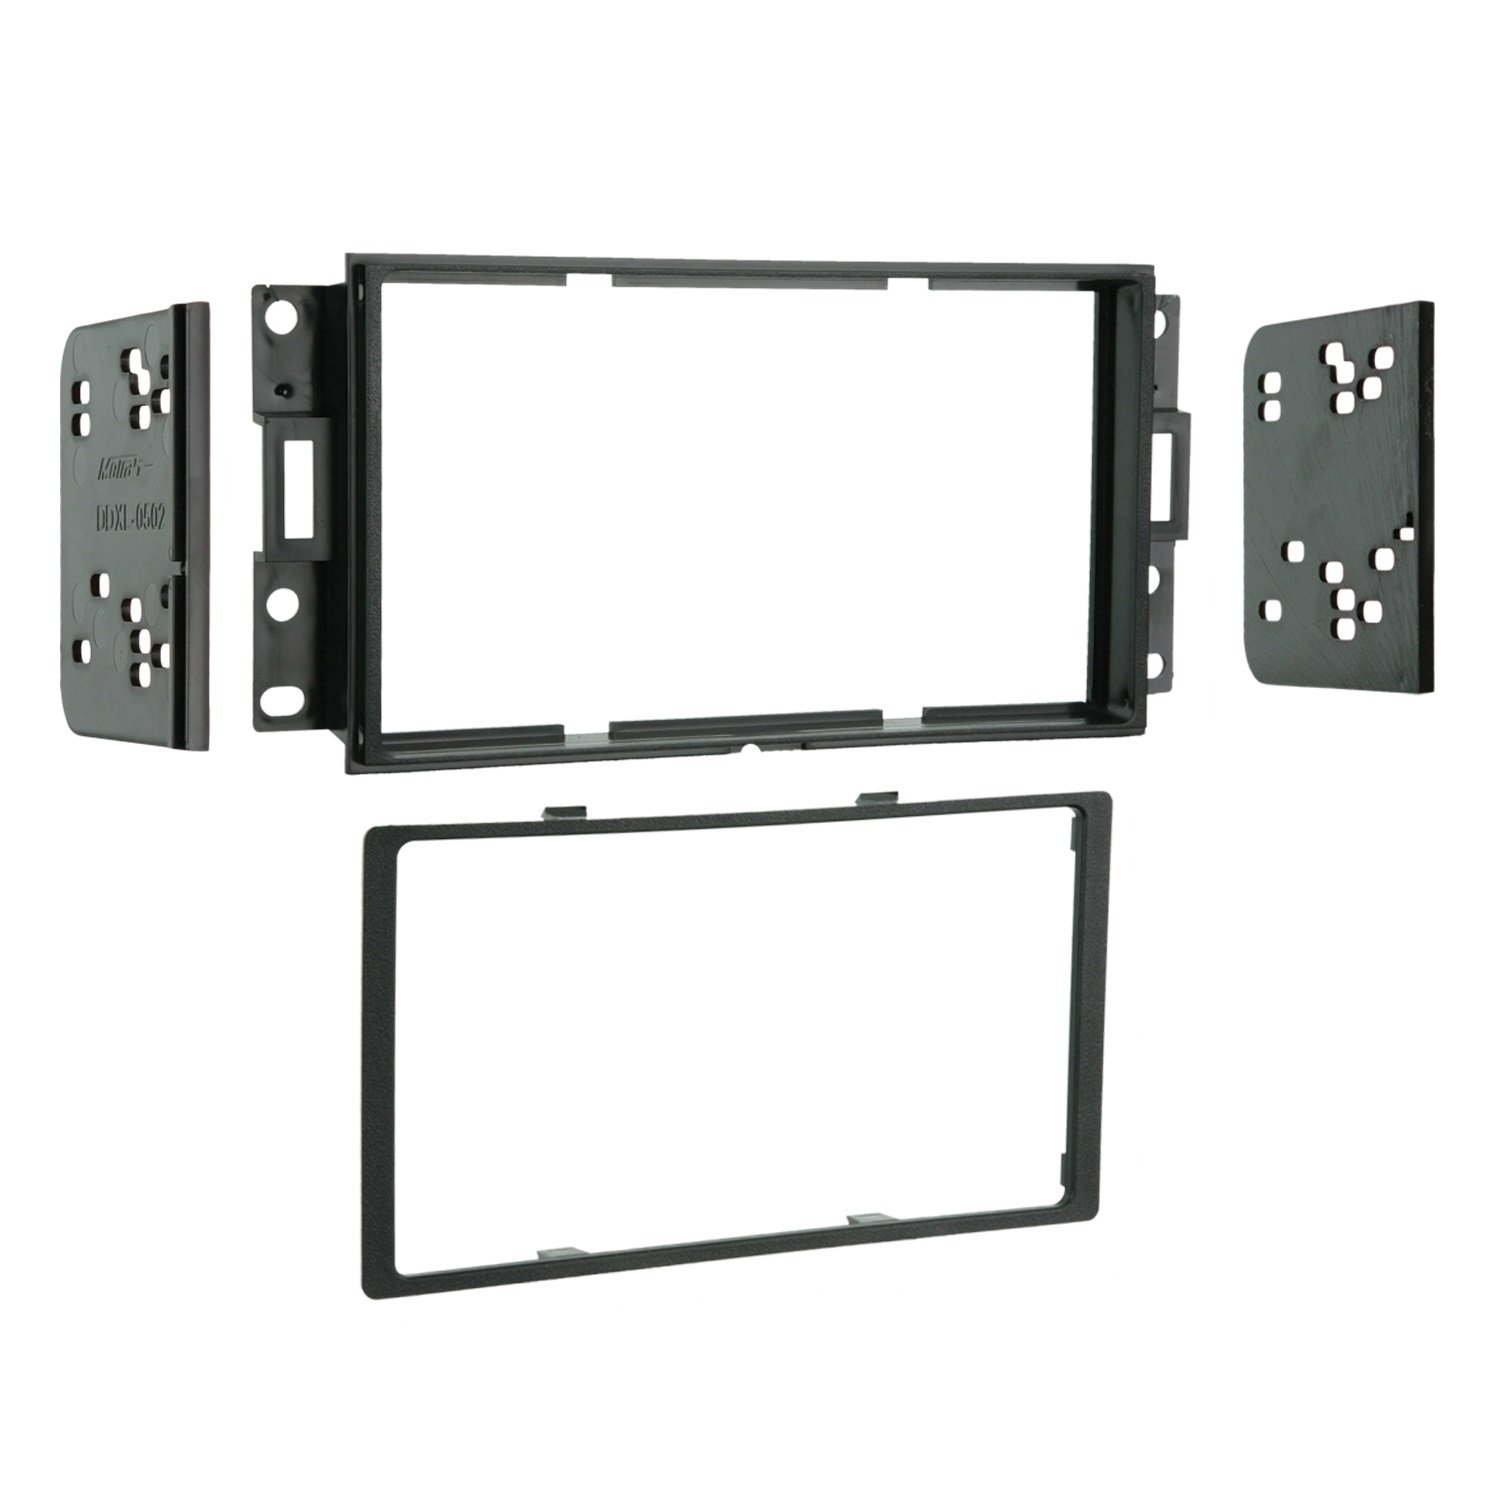 618vH 9eYyL._SL1500_ amazon com metra 95 3527 double din installation dash kit for 2008 Pontiac Grand Prix Wiring Harness at readyjetset.co